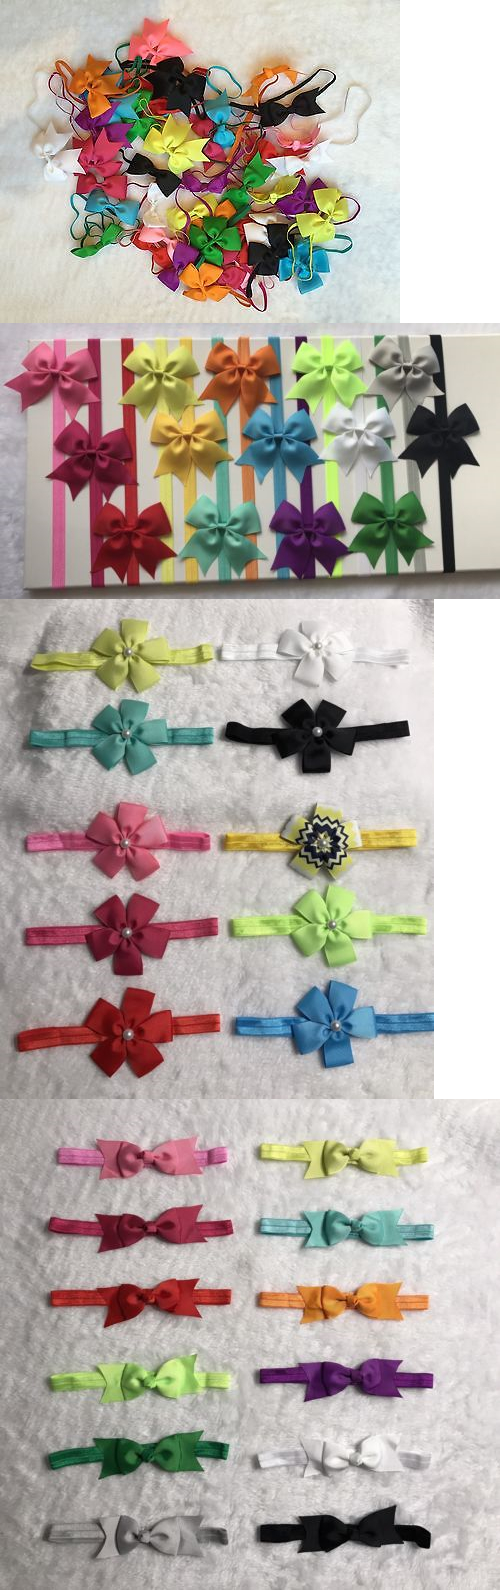 Hair accessories for babies ebay - Hair Accessories 18786 83 Pcs Mix Lots Headband Baby Infant Toddler Girls Hair Bow Headwear